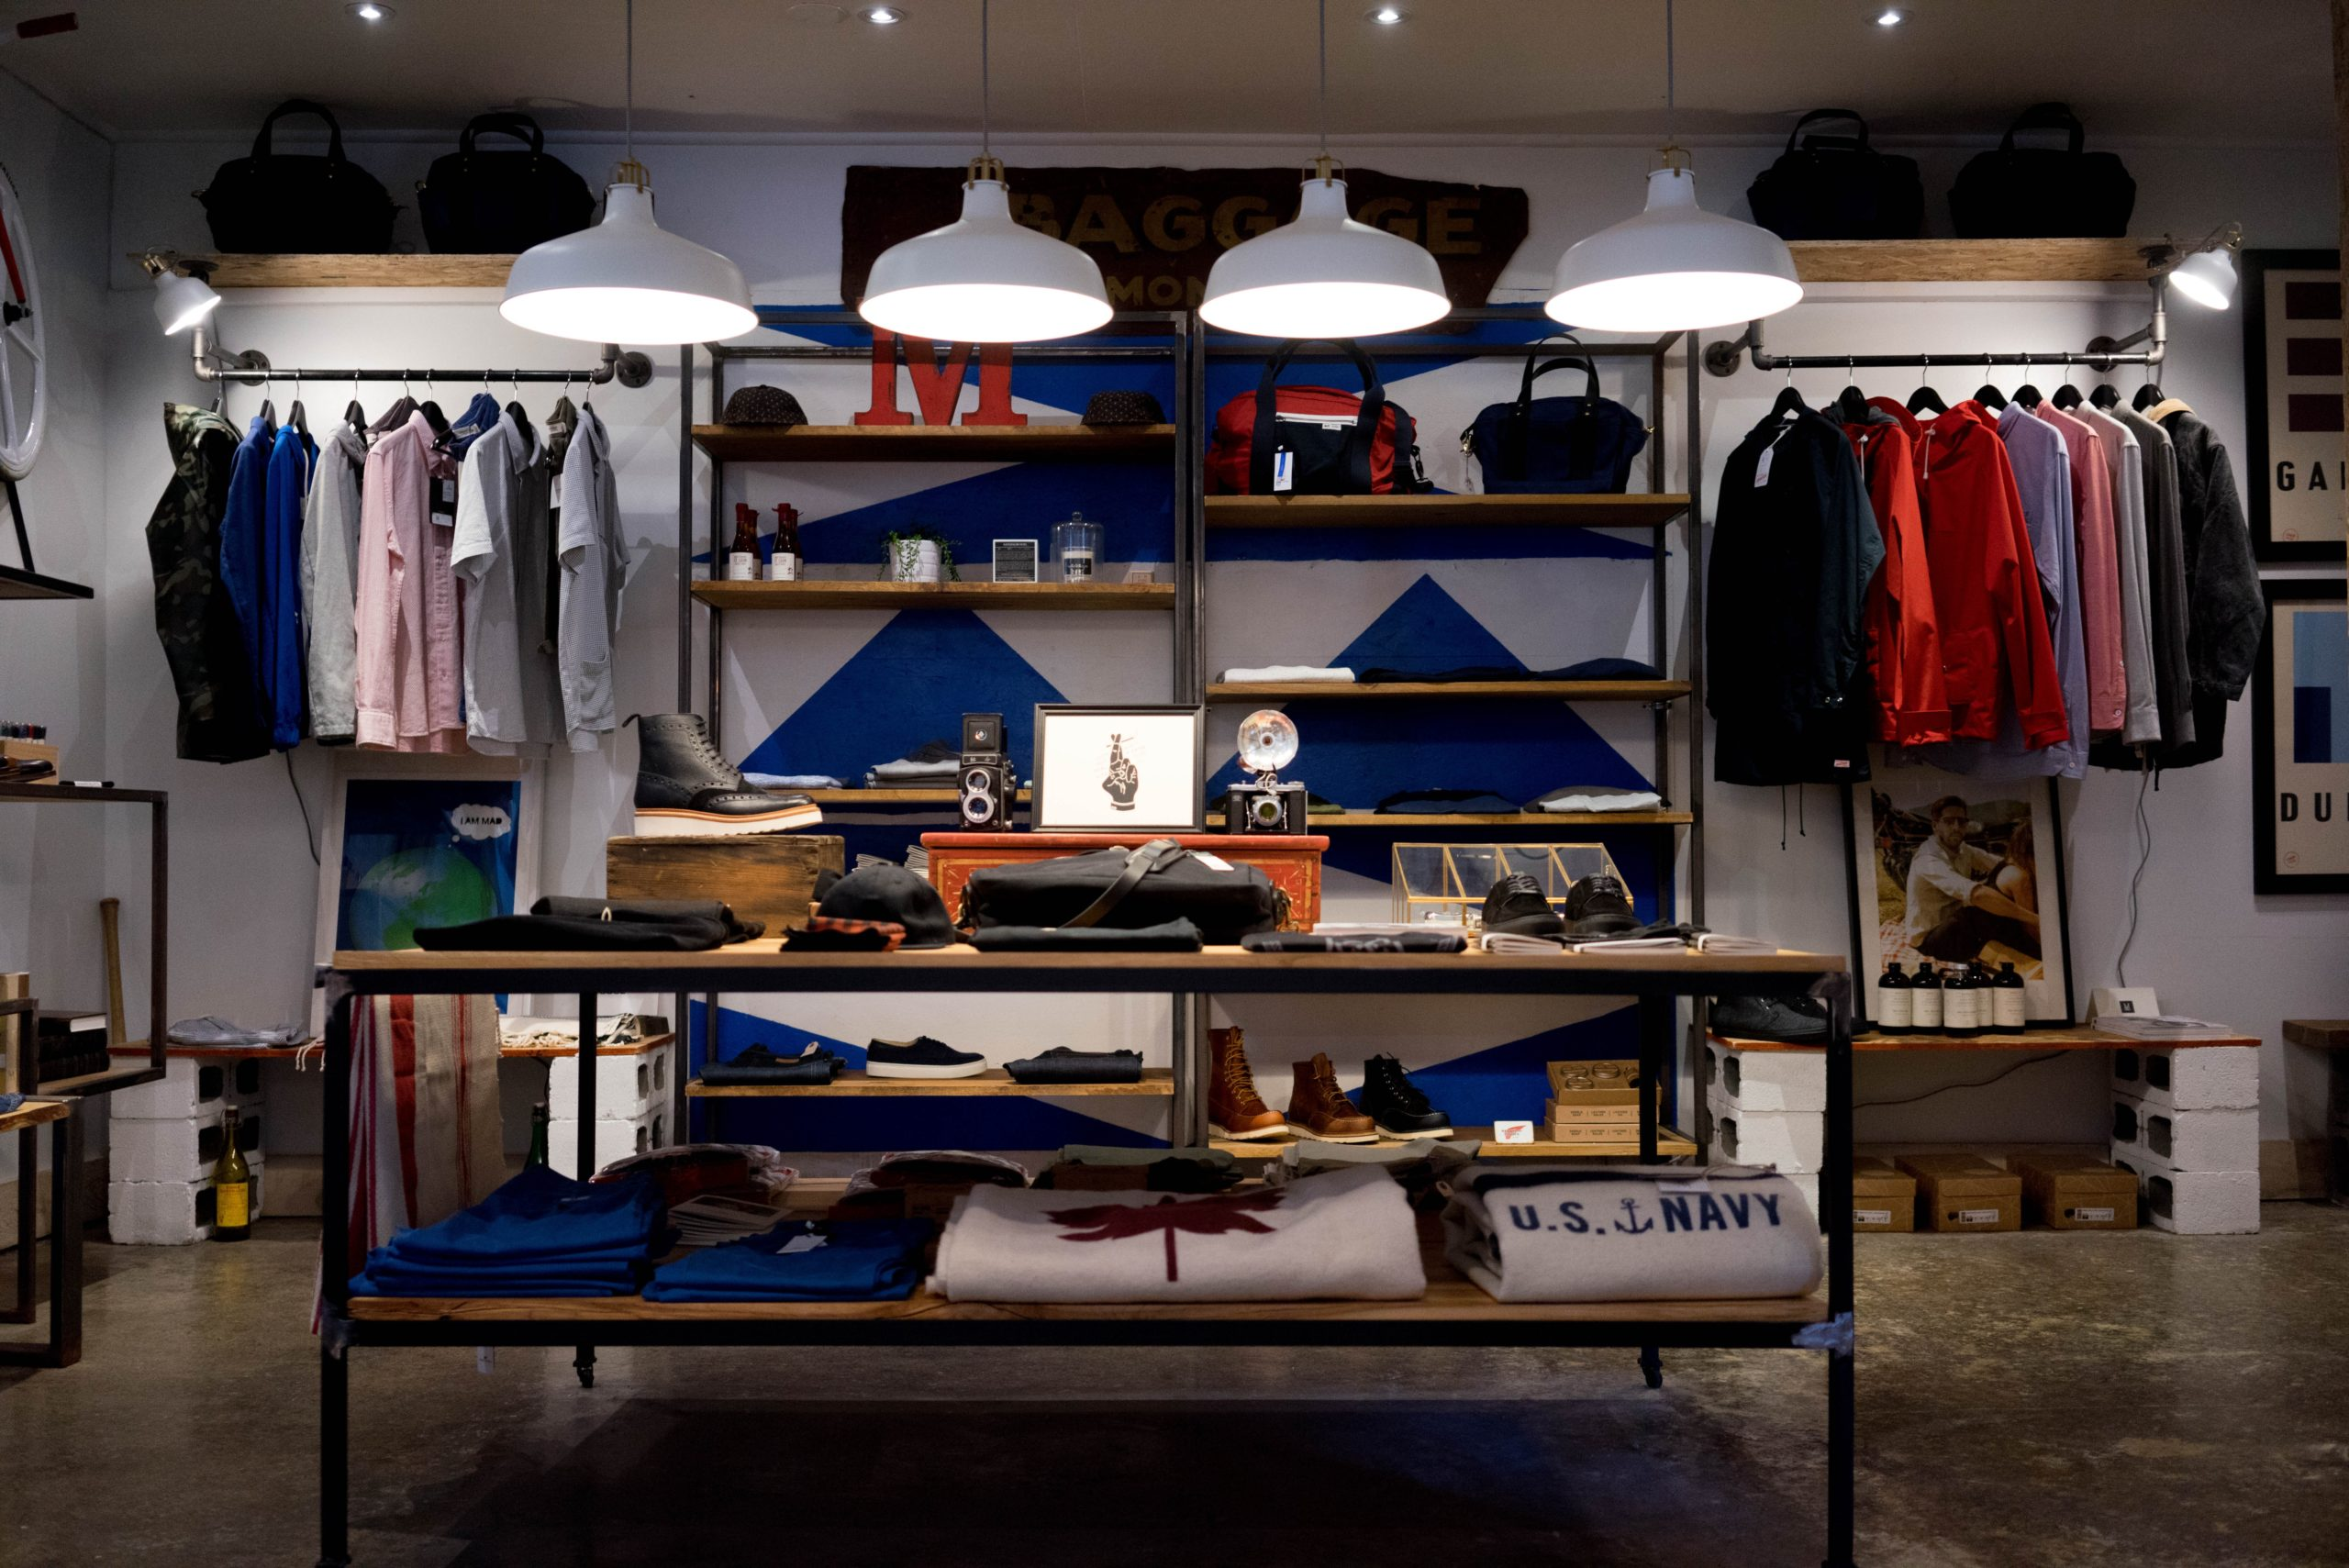 An image of a clothing store